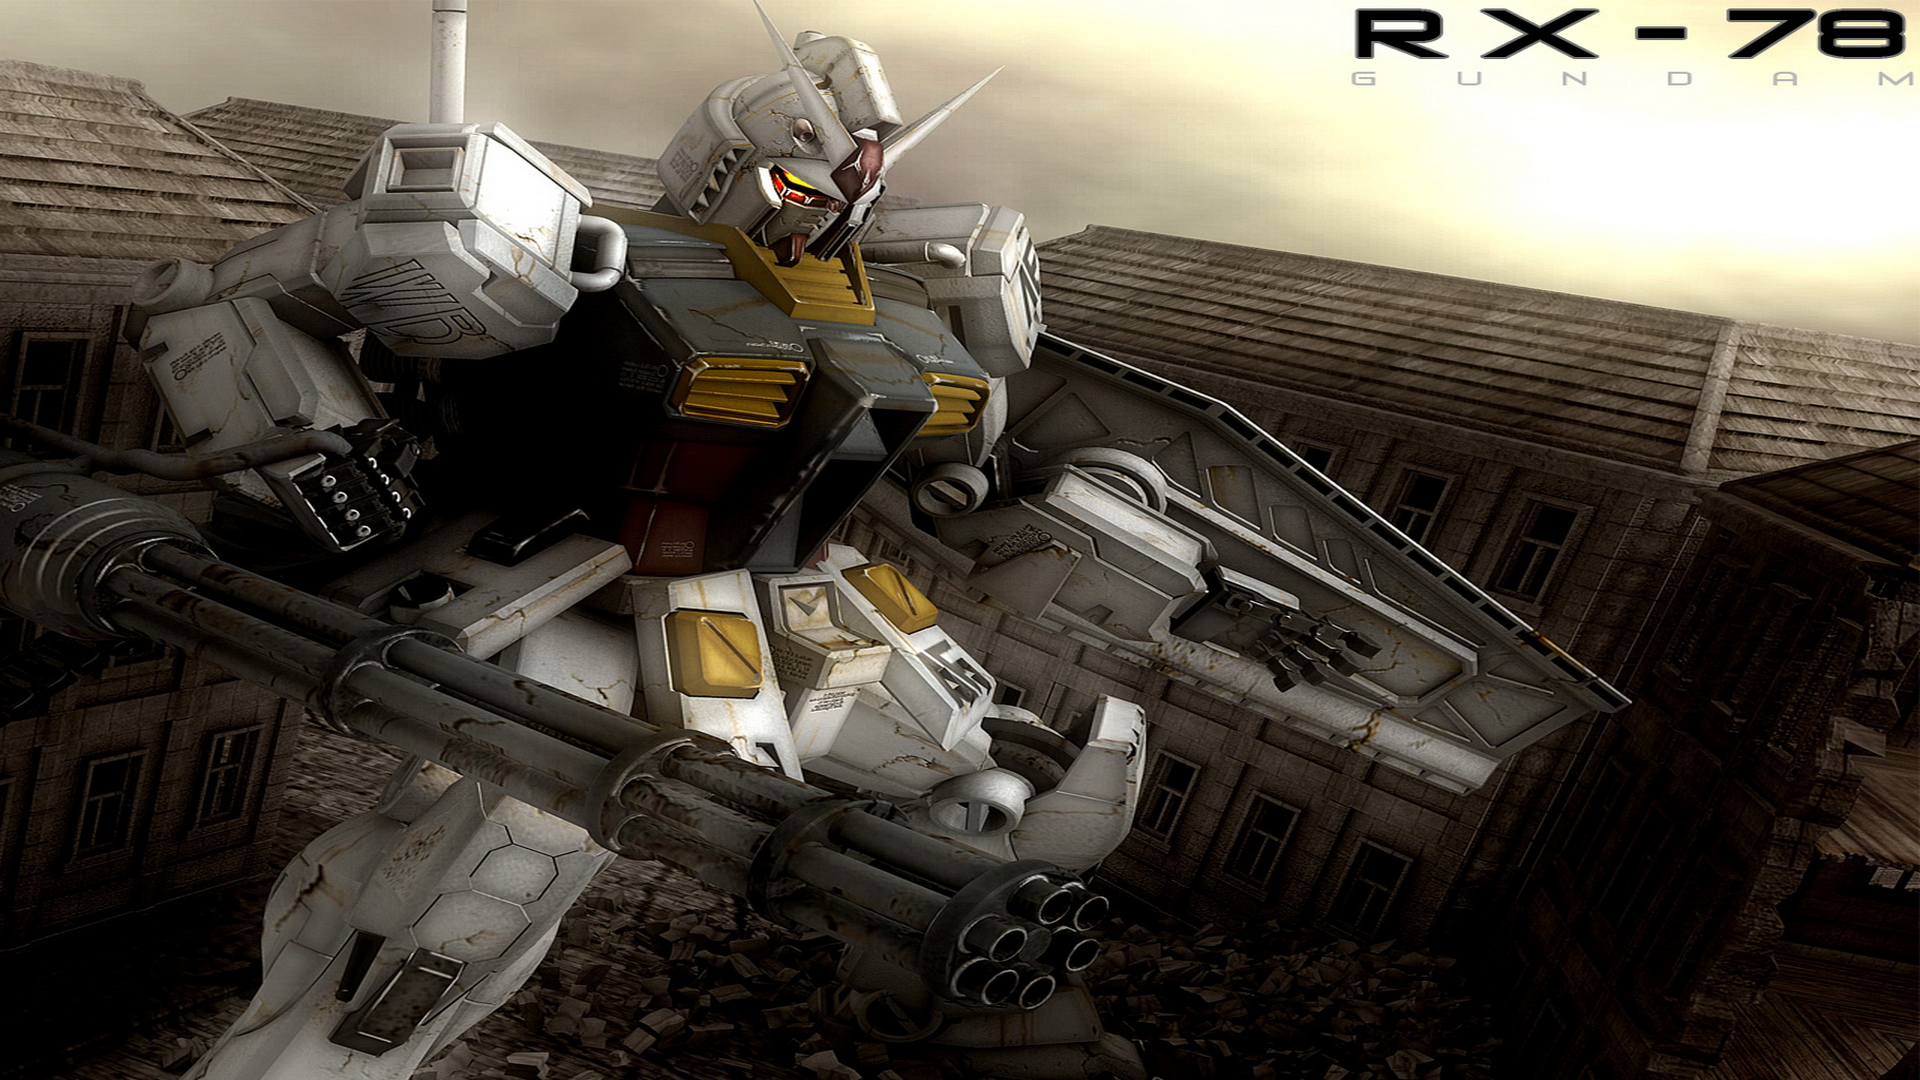 Wallpapers HD Desktop Wallpapers Gundam Wallpapers 11jpg 1920 x 1920x1080